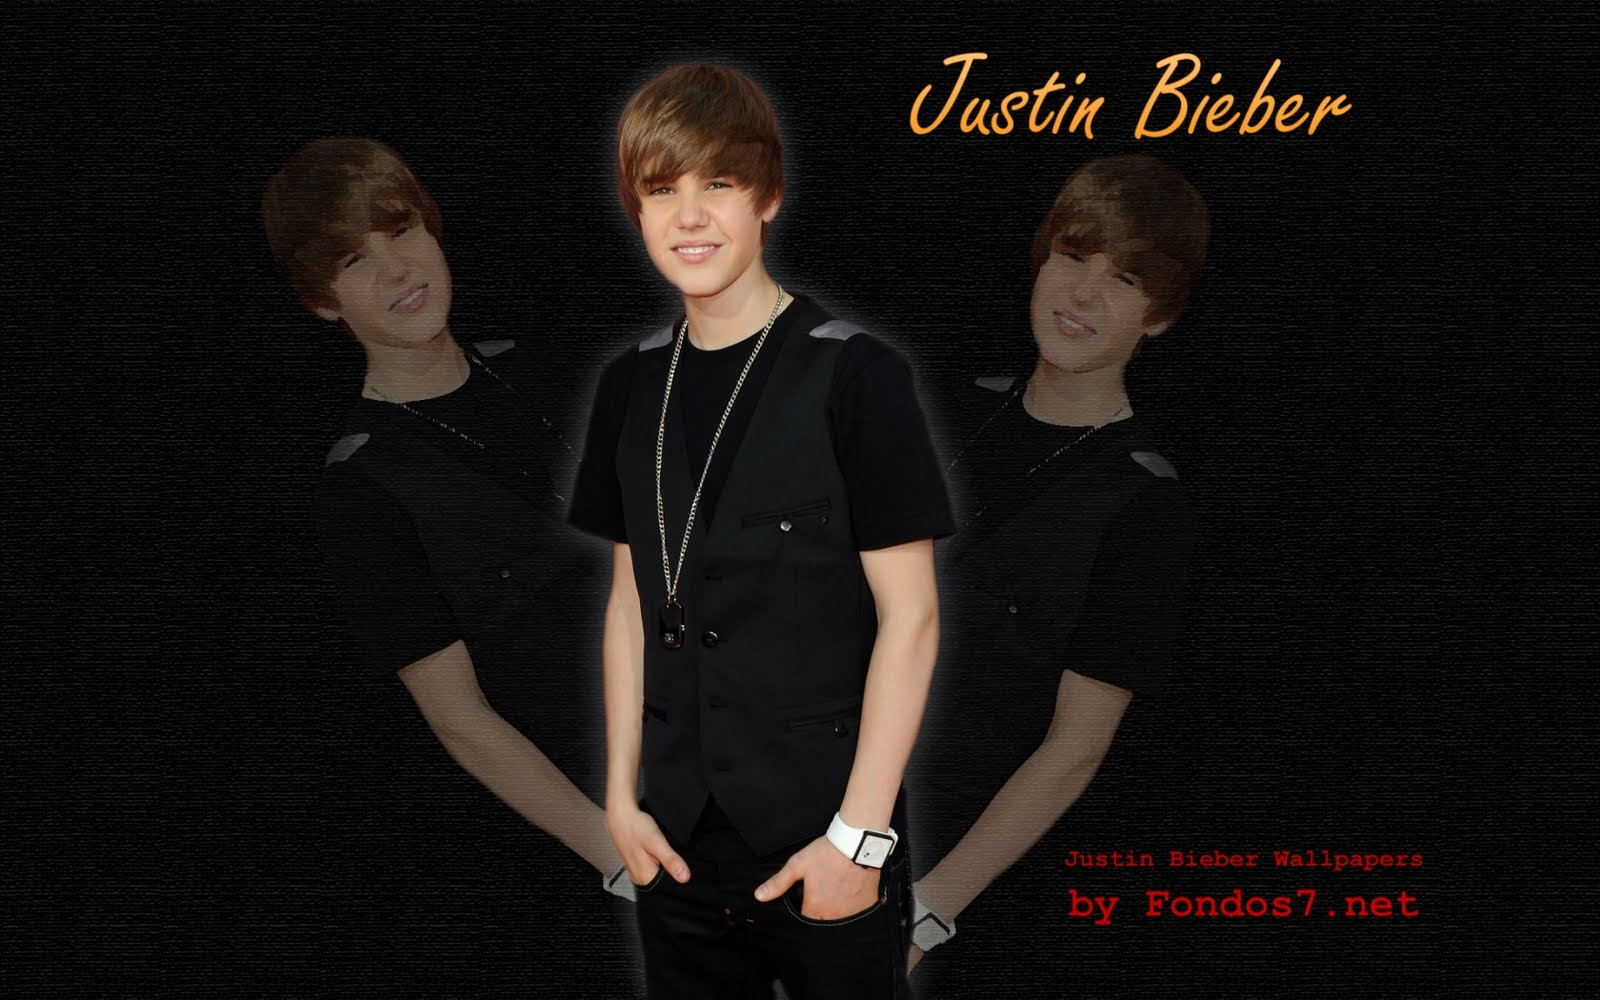 Justin bieber 2011 wallpaper new haircut  Clickandseeworld is all